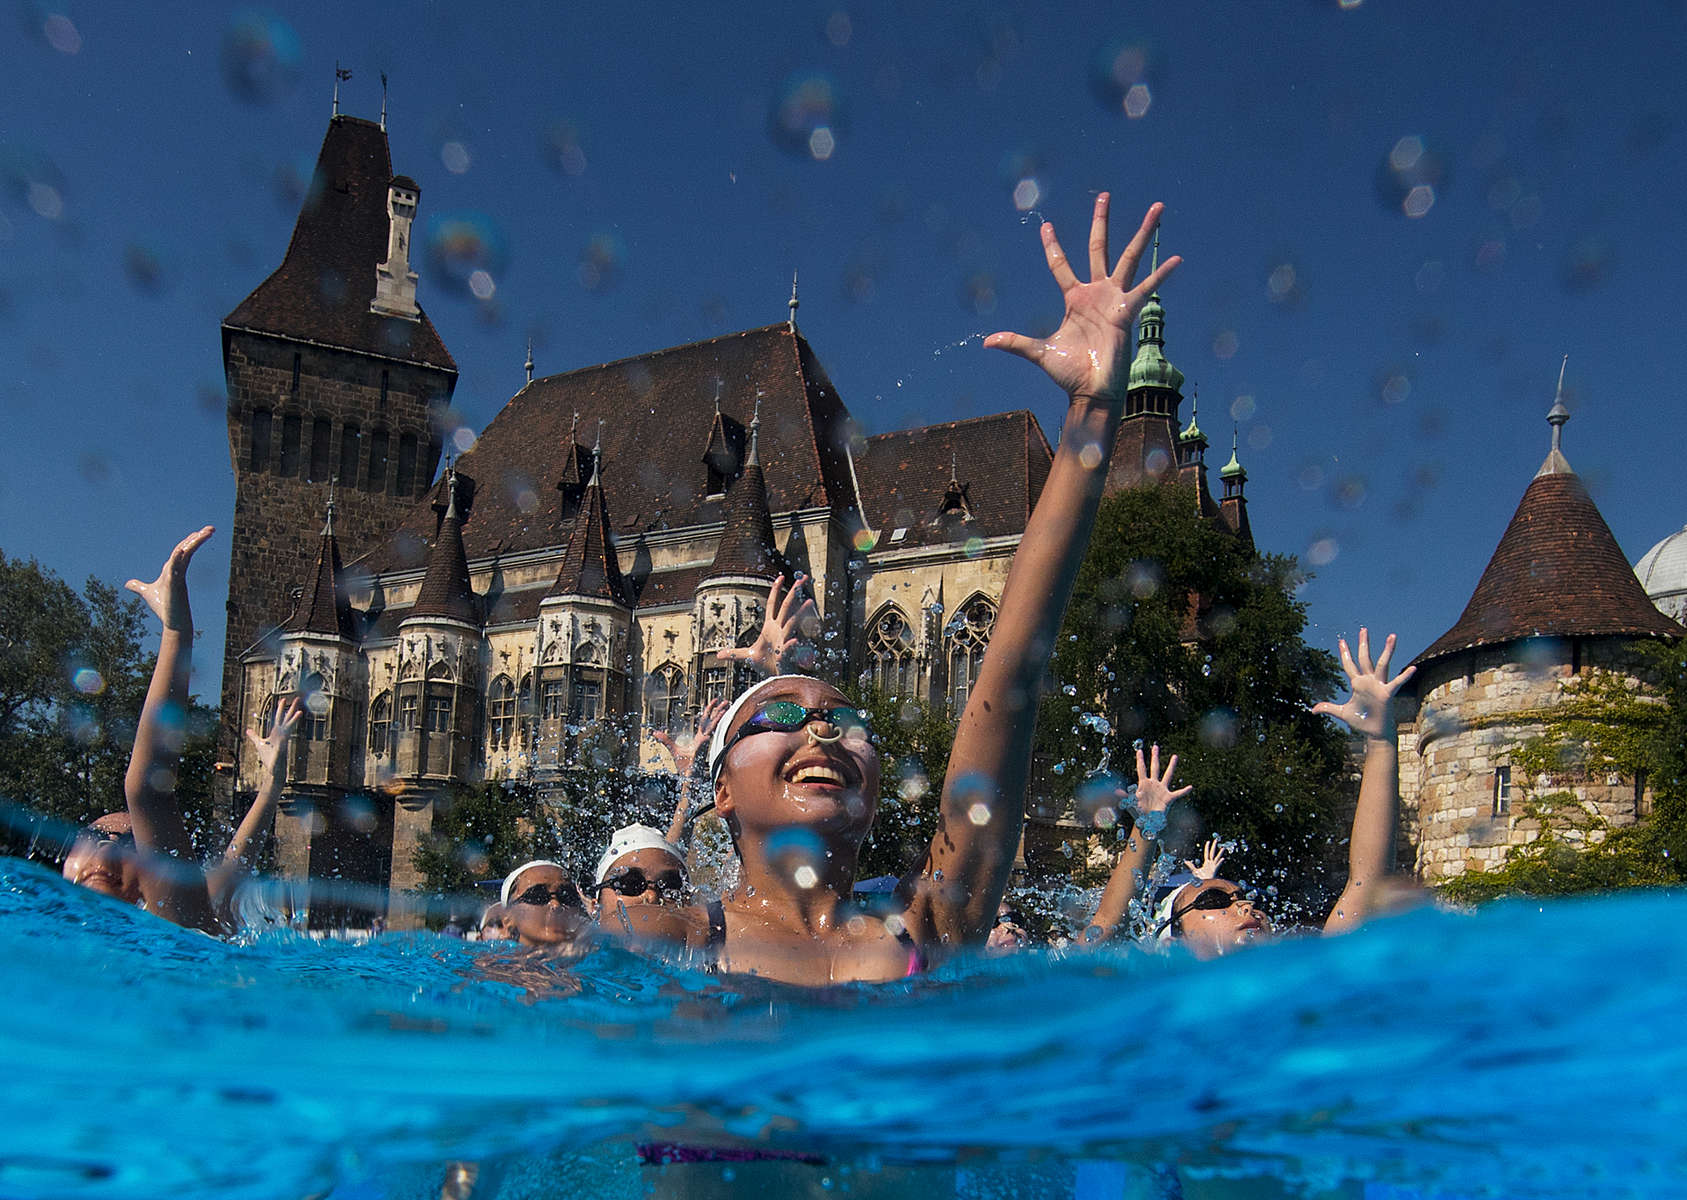 Team Macau trains in front of the Vajdahunyad Castle during day 4 of the Budapest 2017 FINA World Championships on July 17, 2017 in Budapest, Hungary.